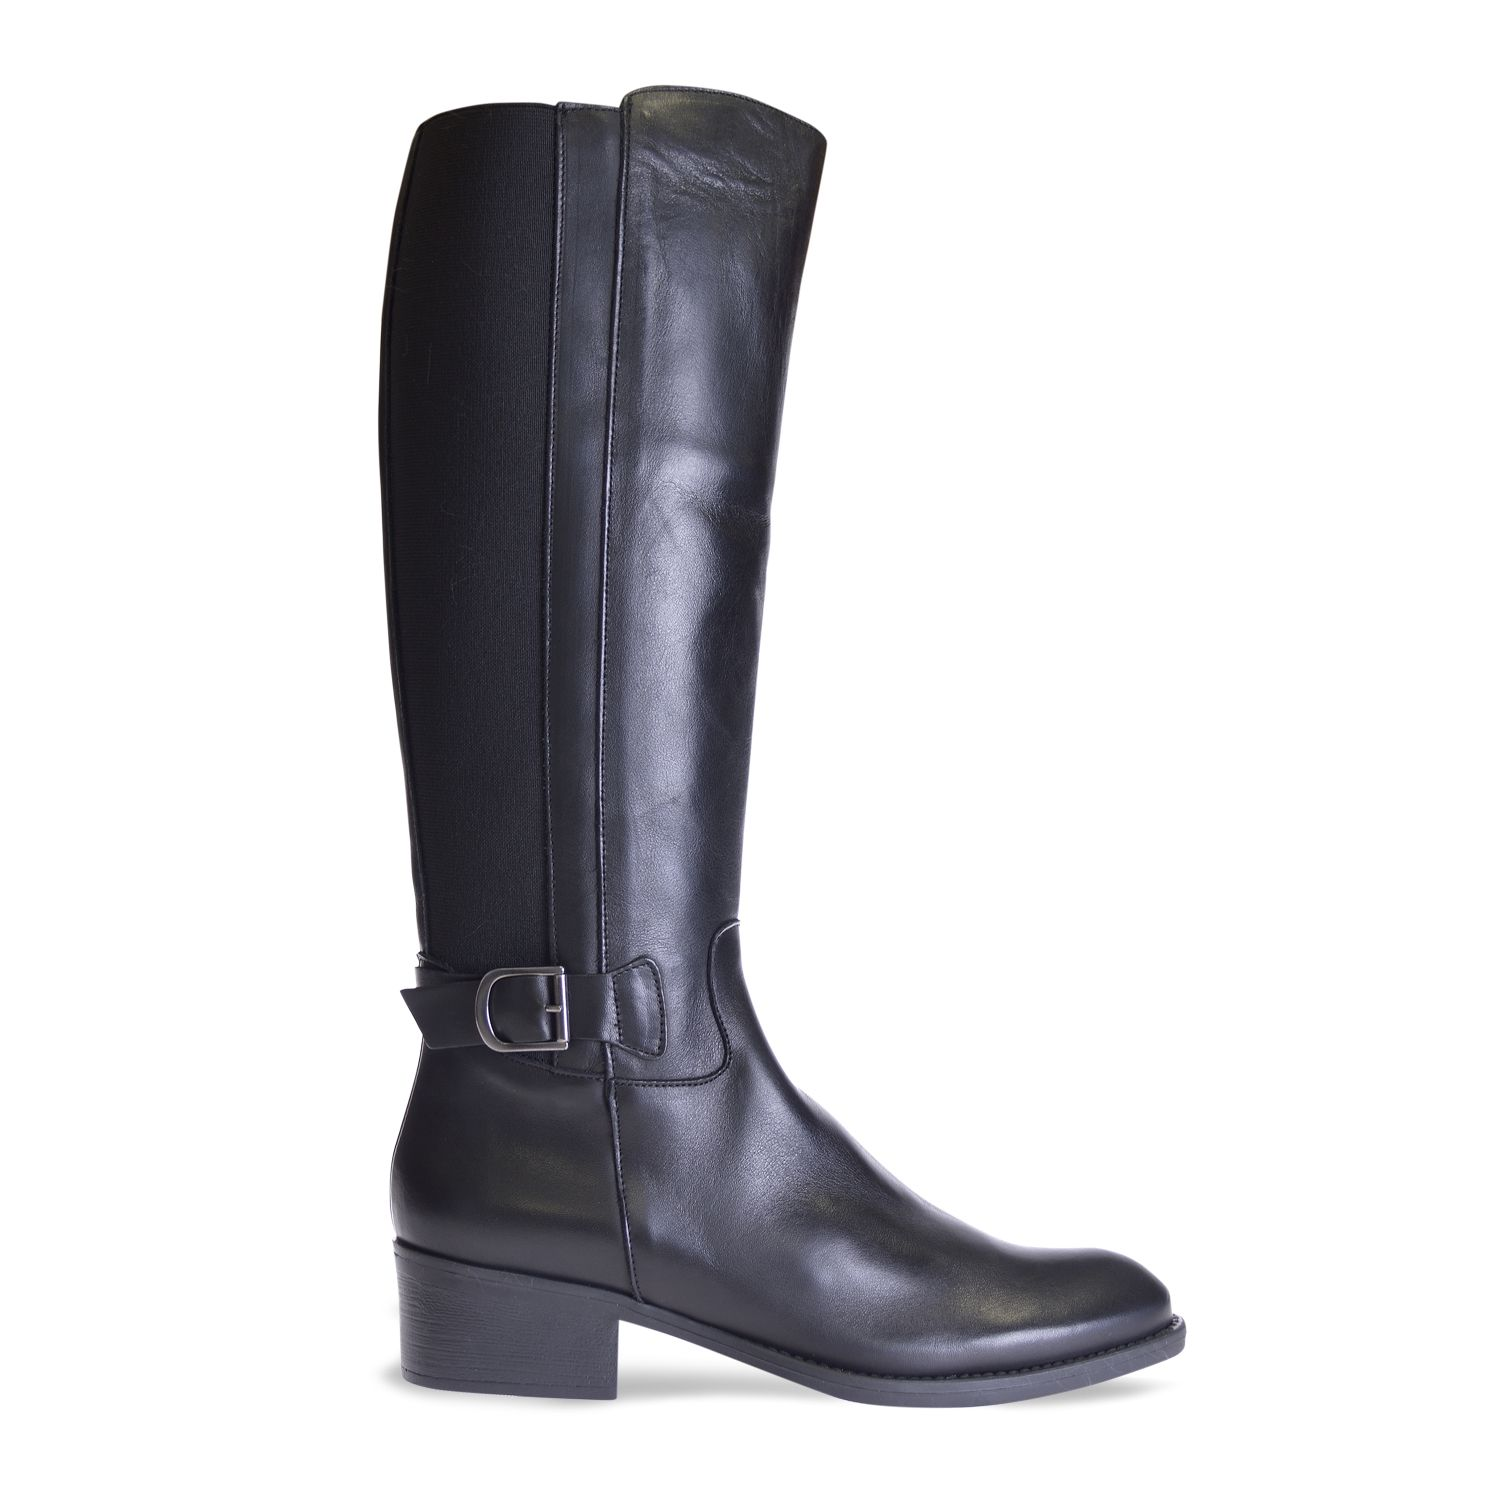 Boot for women made of black leather - TACOMA-P